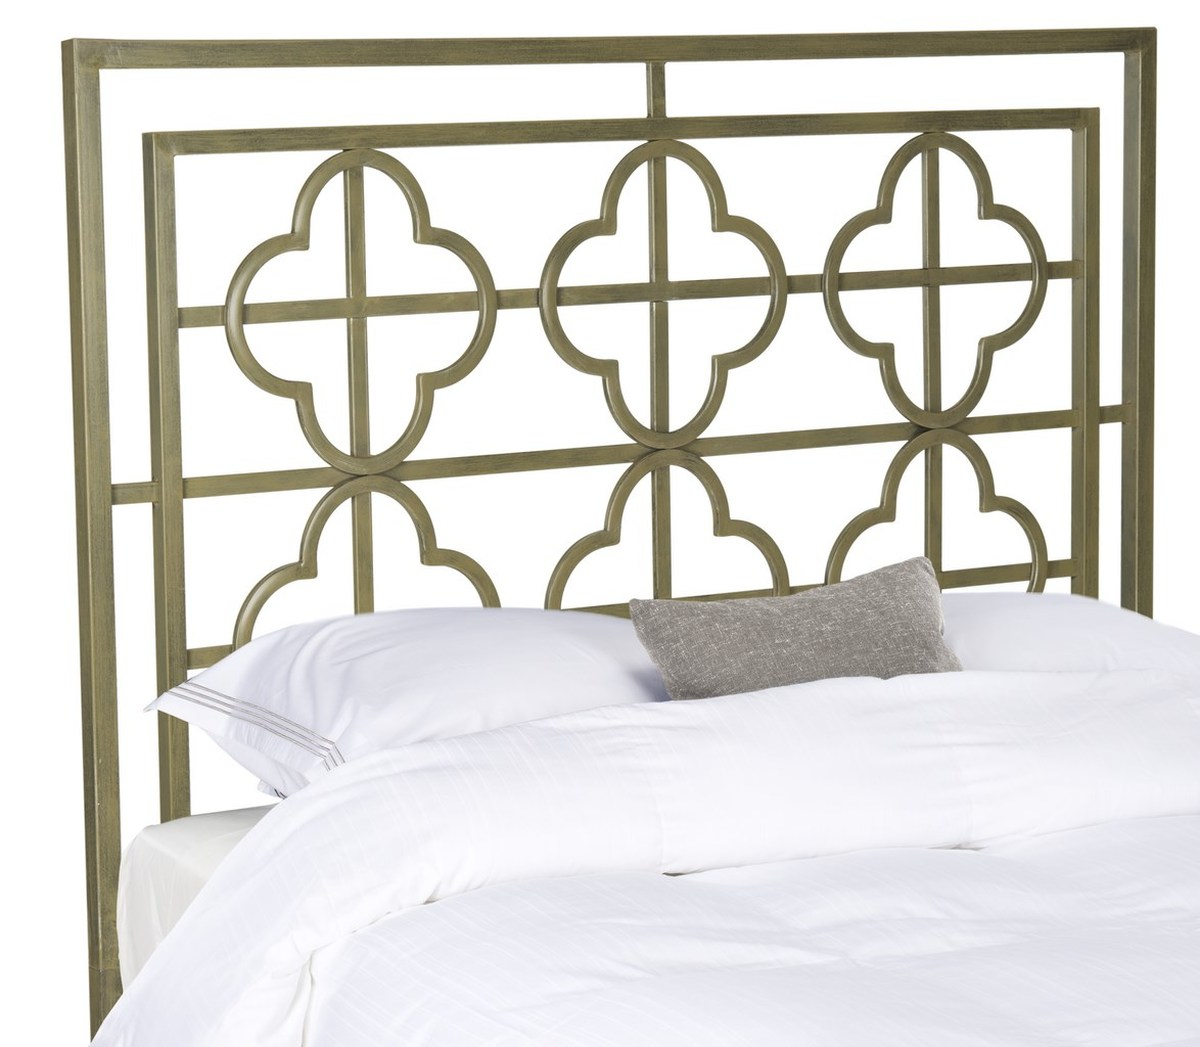 beds creativeworks metal size in bedroom with mahogany finish home bed footboard and queen gold this headboard decor